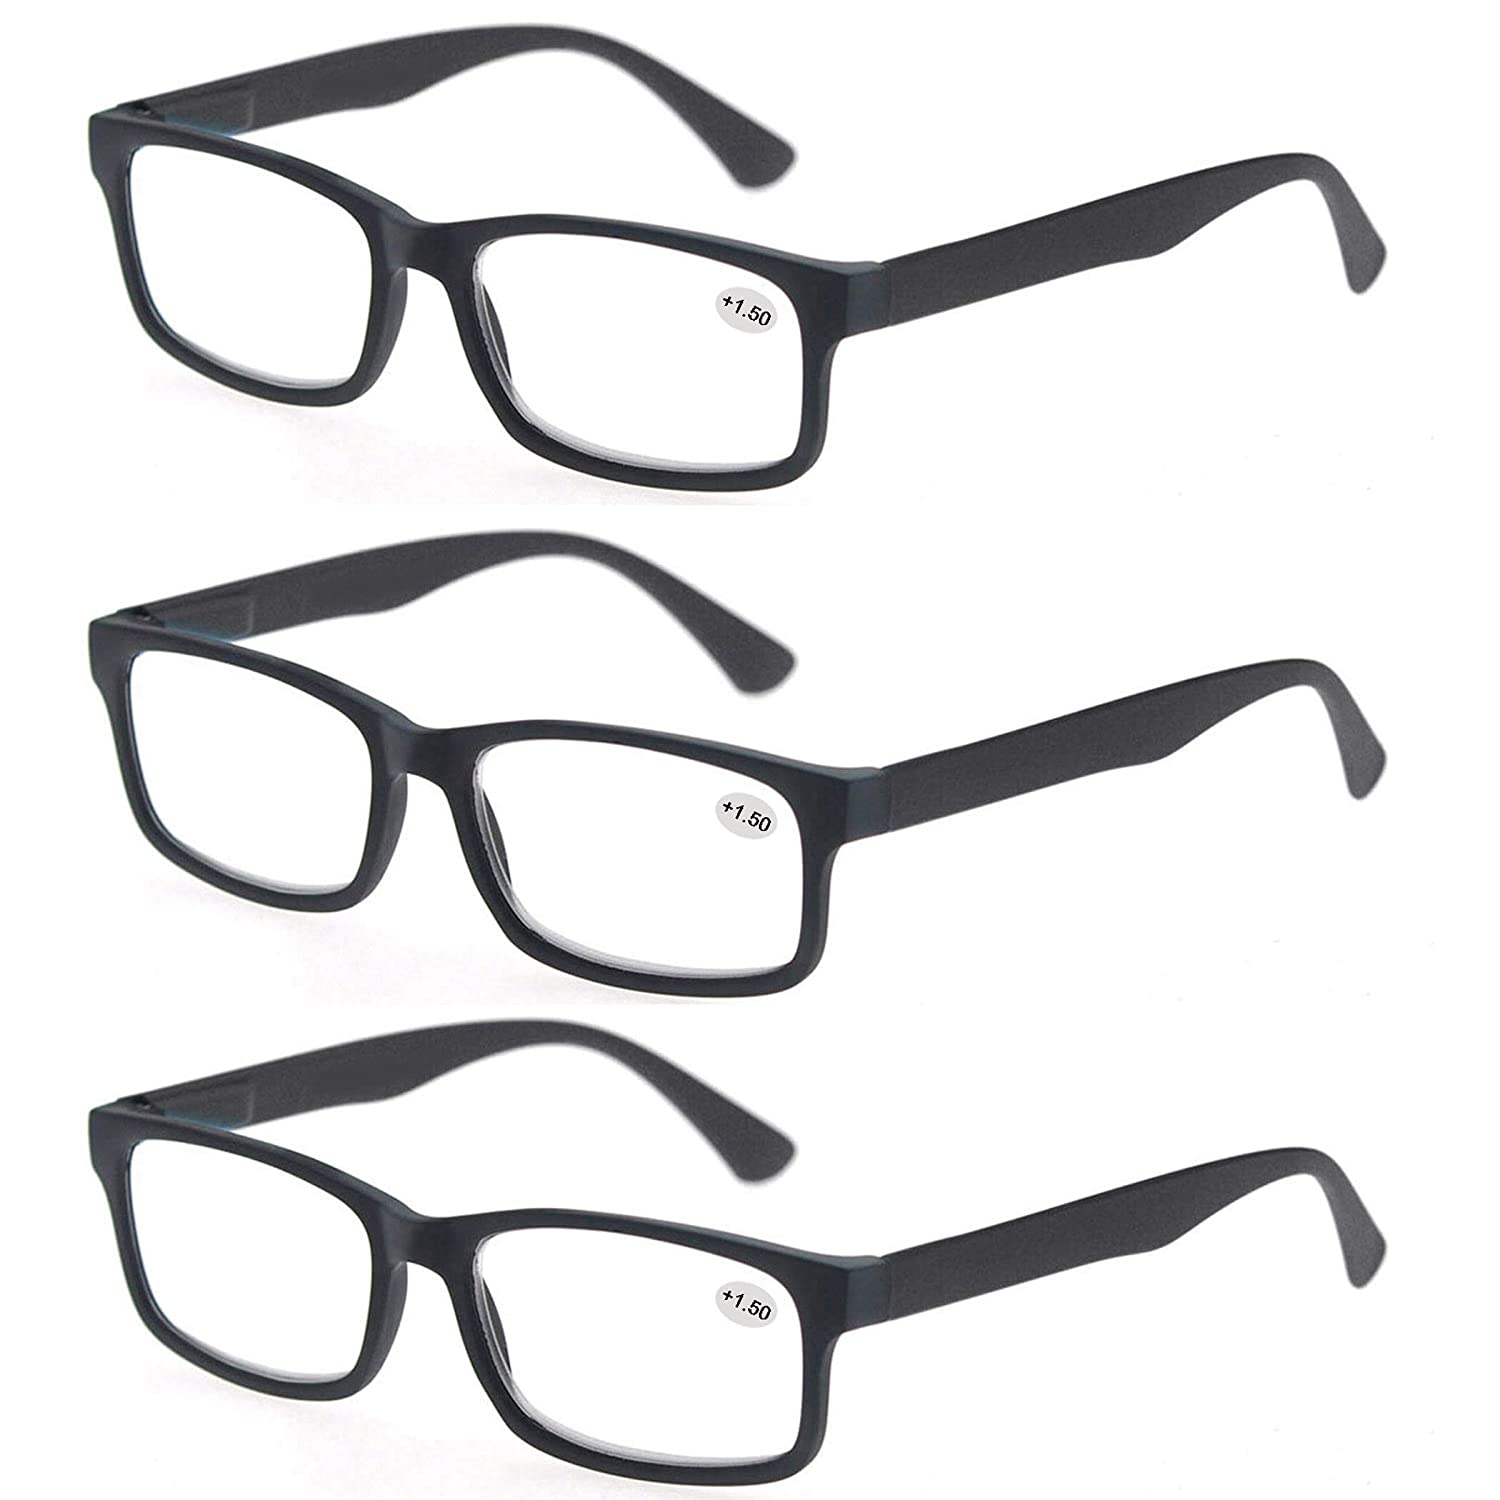 a88b3adda9c5 Amazon.com  MODFANS Pack of 3 Vintage Plastic Reading glasses Rectangular  with Spring Hinge Comfort Clear Lens For Men and Women +1.00  Clothing